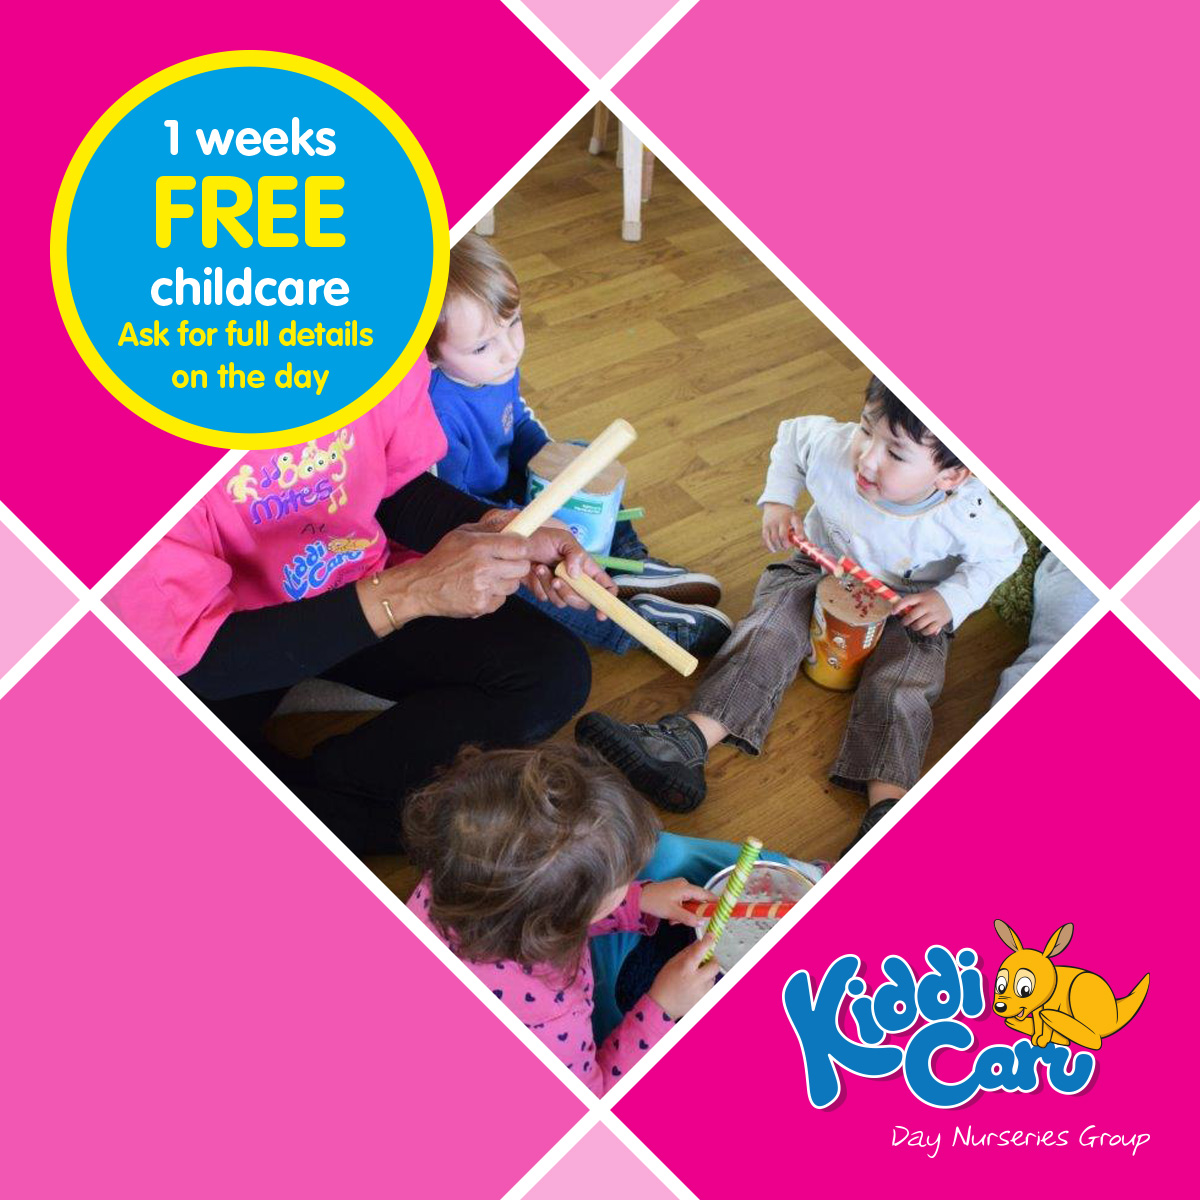 Childcare Open Event at Kiddi Caru Day Nursery and Preschool in Chelmsford